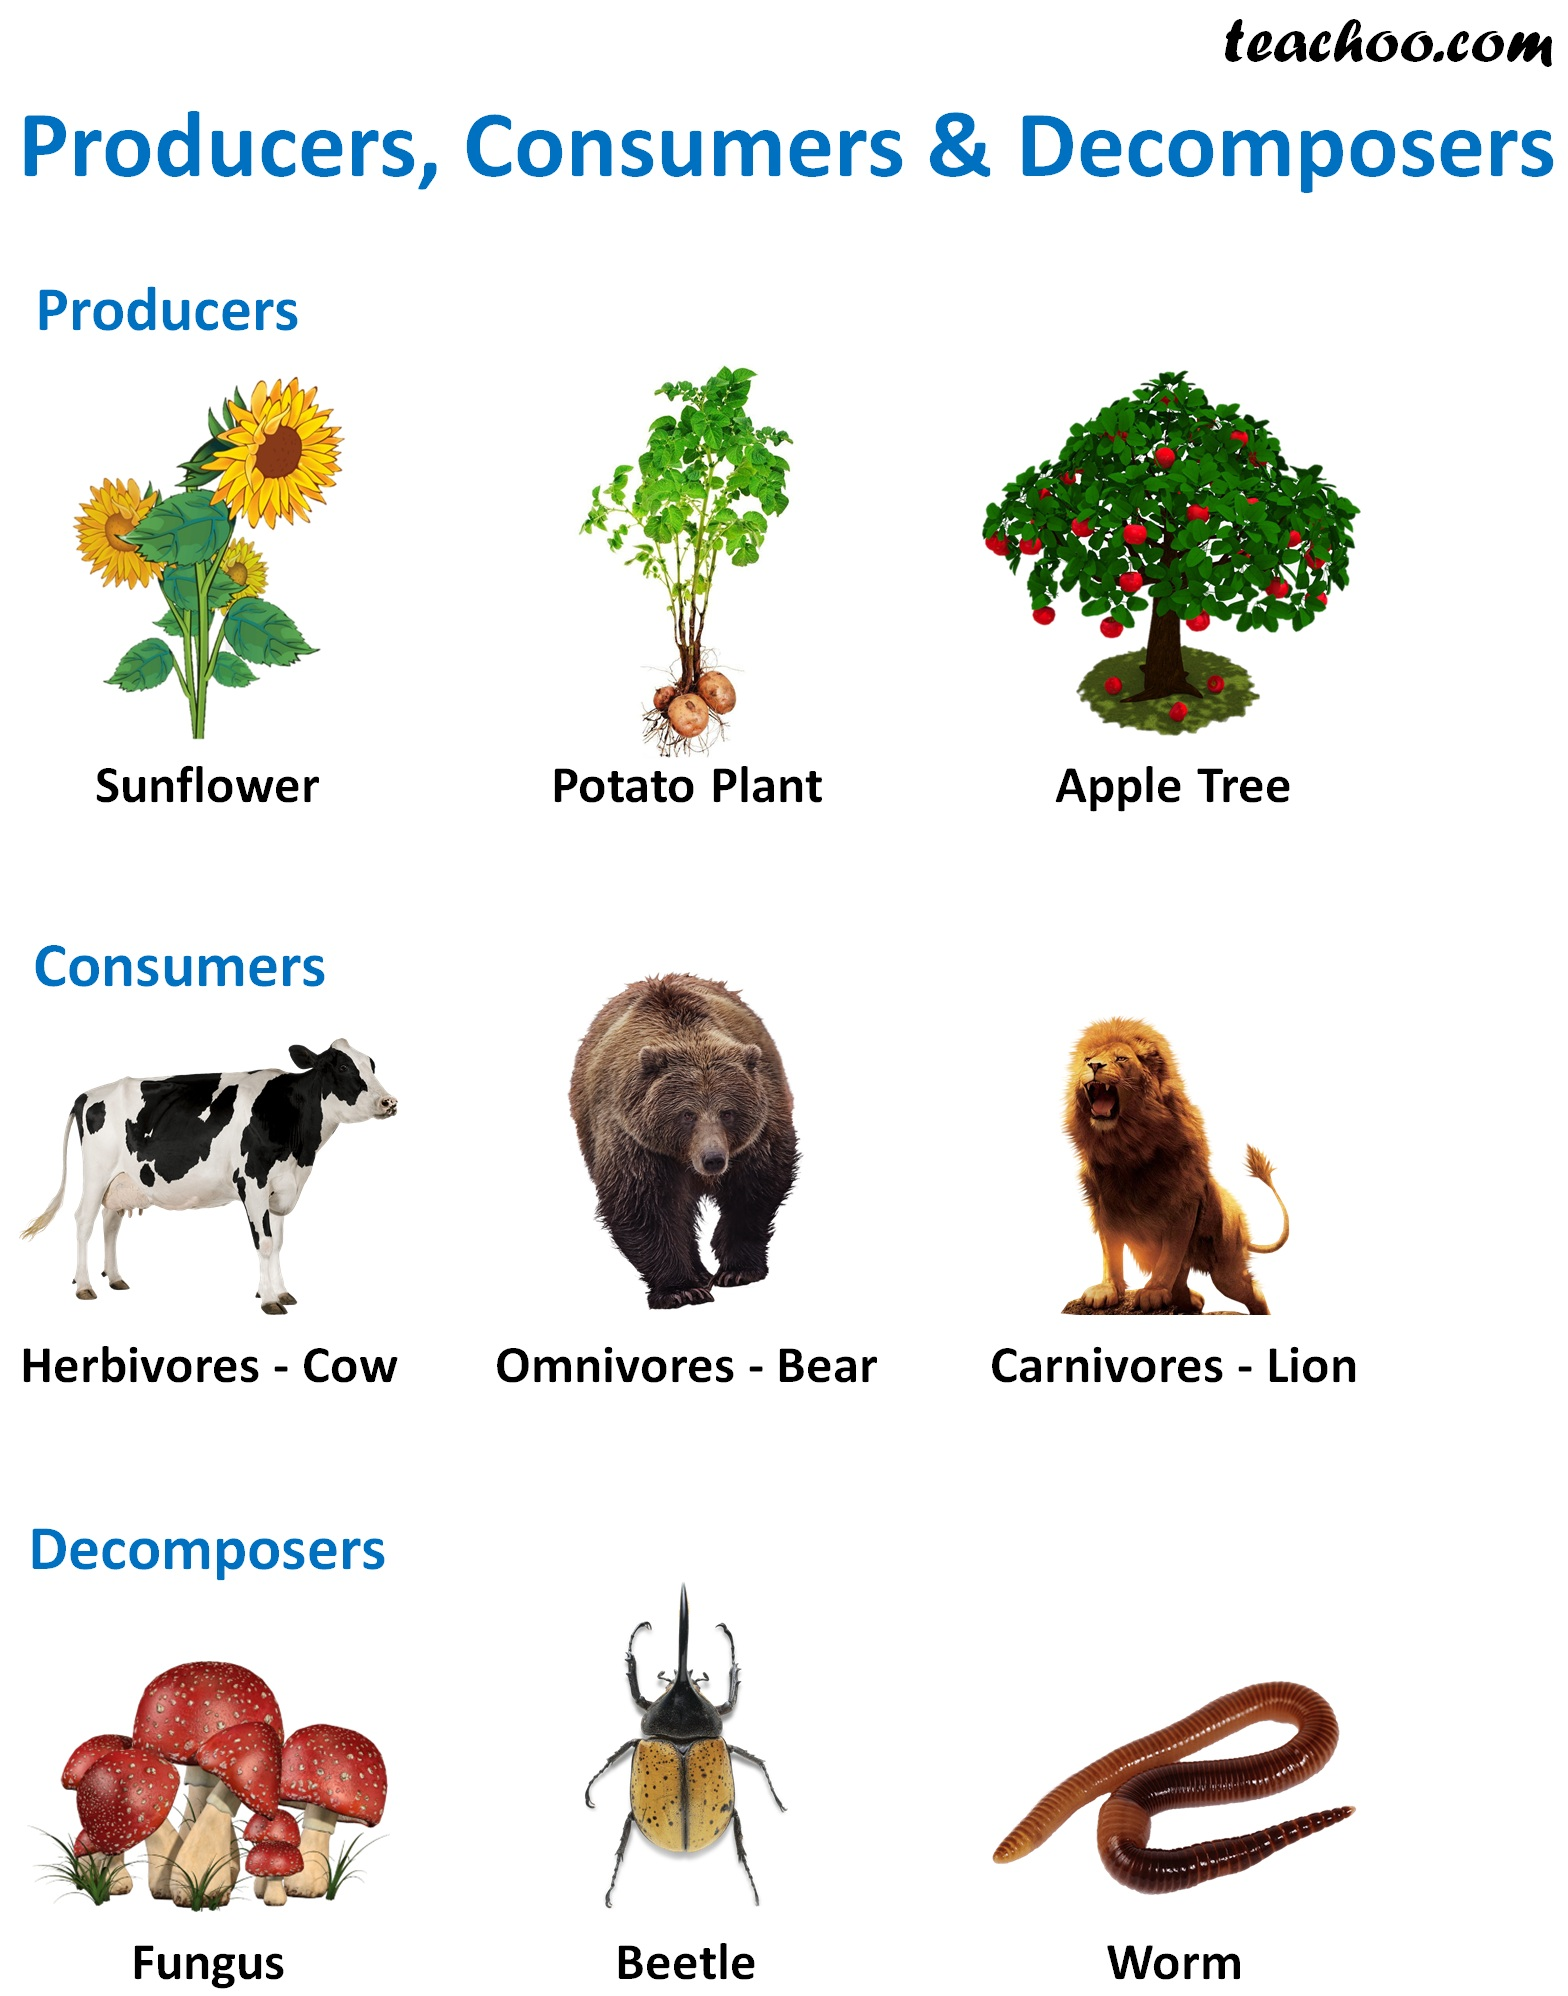 Producers, Consumers & Decomposers Example - Teachoo.jpg